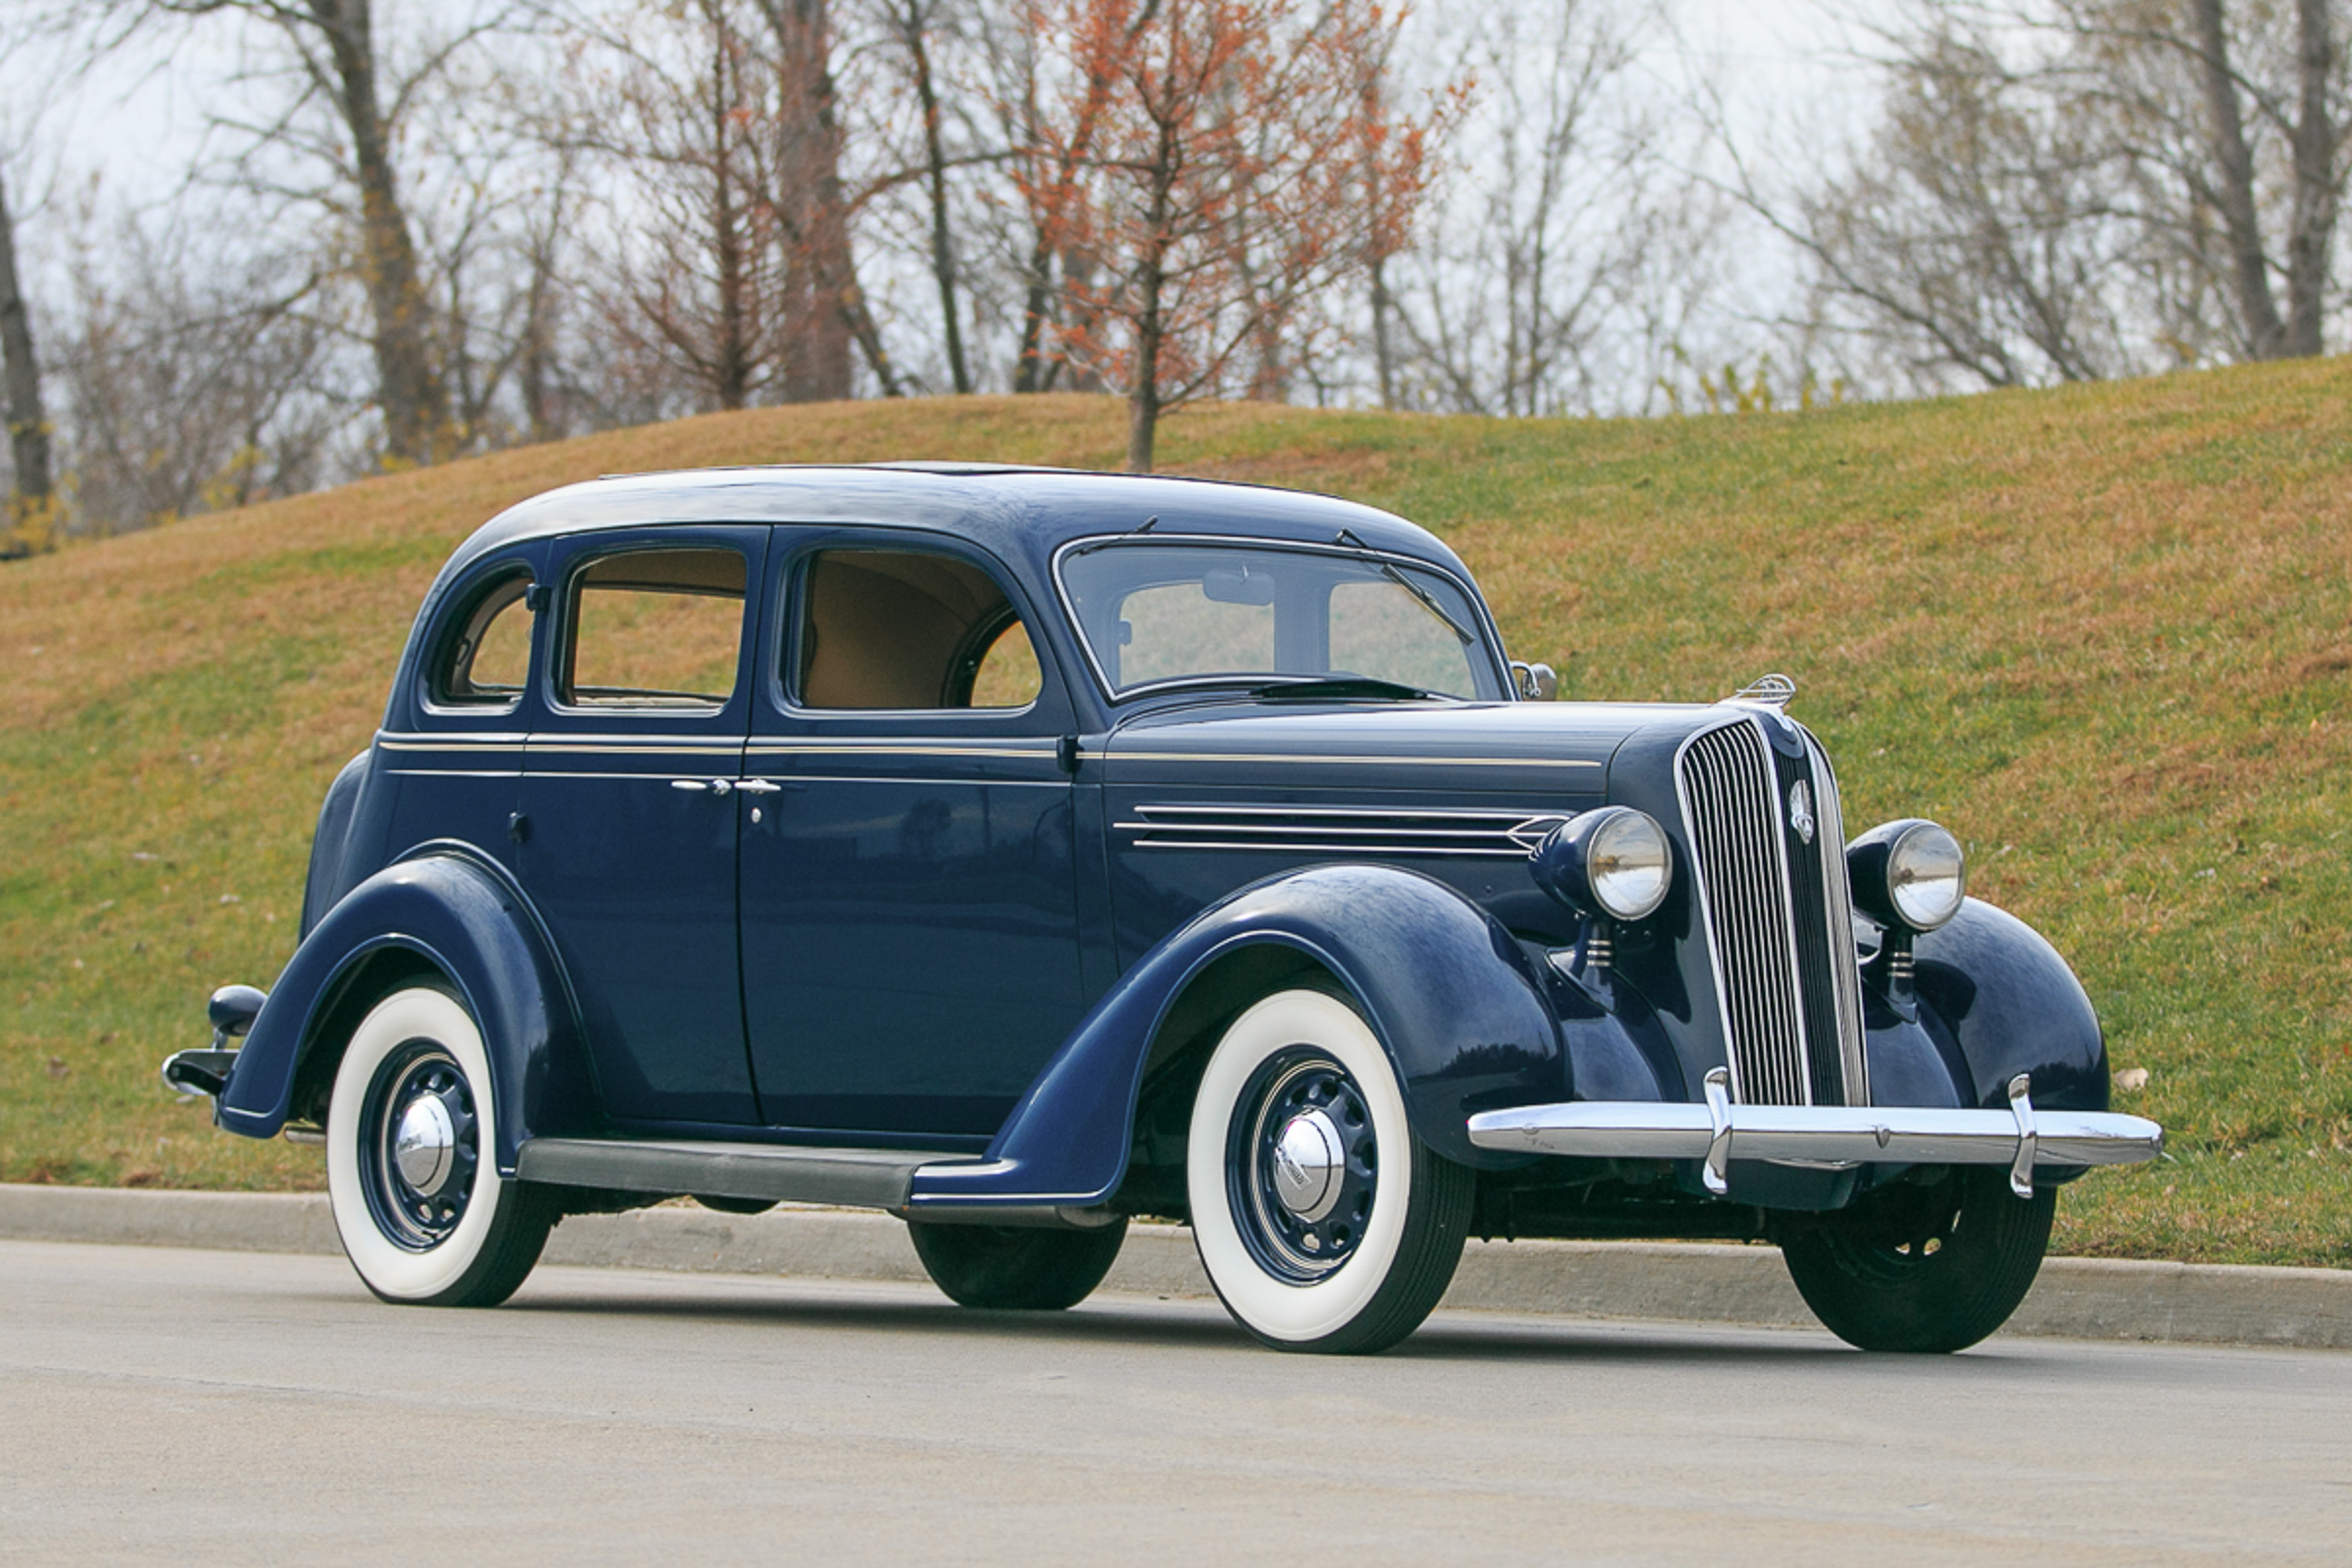 Le Meilleur 1936 Plymouth 4 Door Touring Sedan Fast Lane Classic Cars Ce Mois Ci